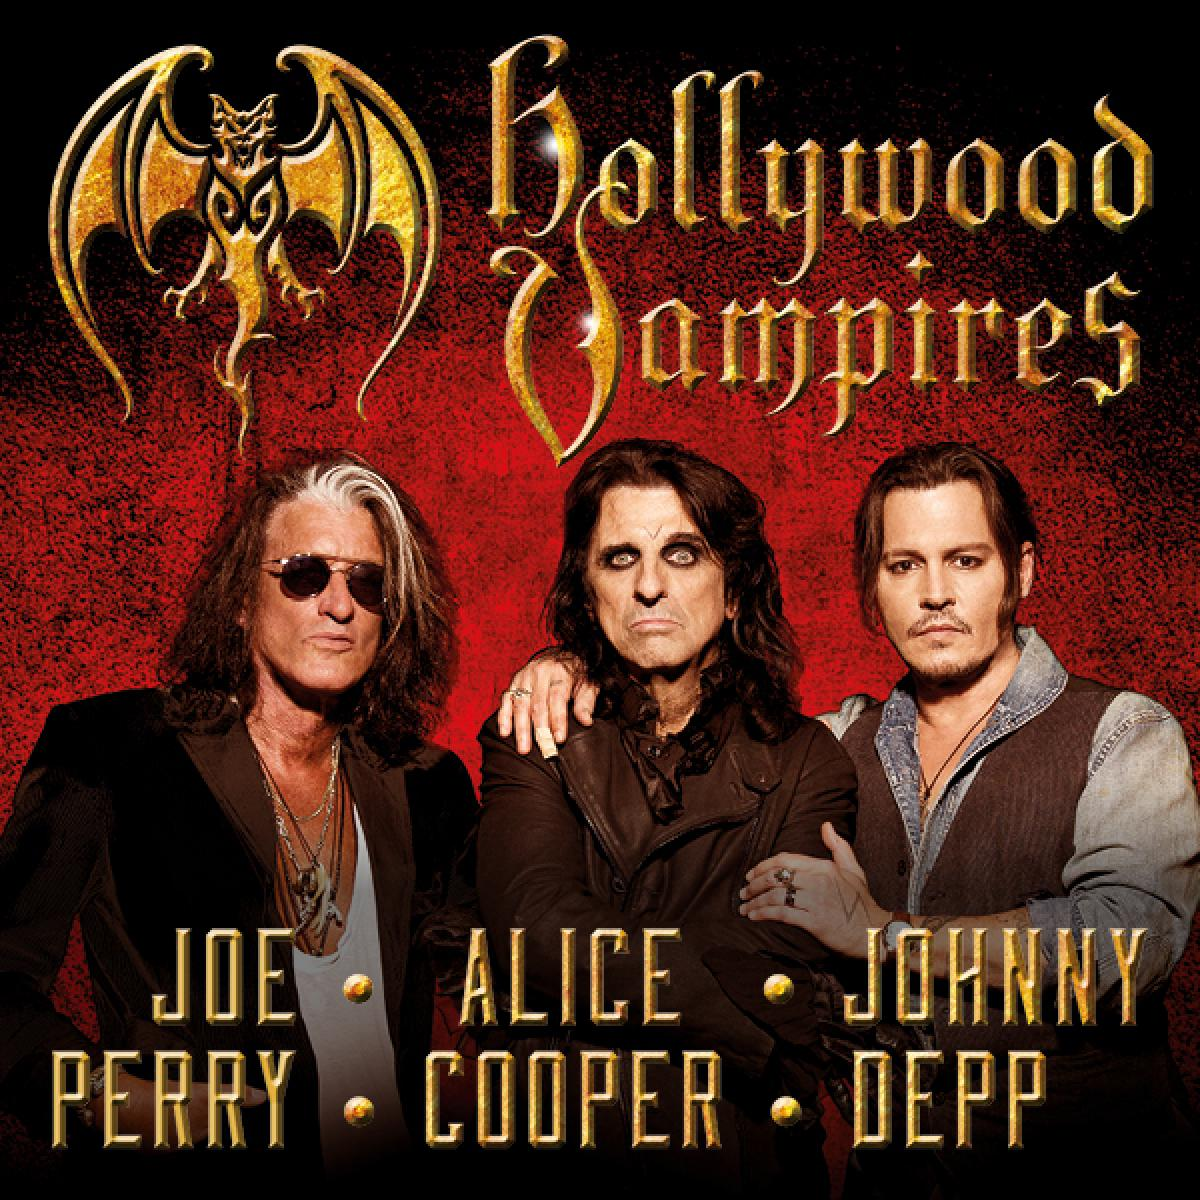 Hollywood Vampires: Alice Cooper, Johnny Depp & Joe Perry at Fillmore Auditorium